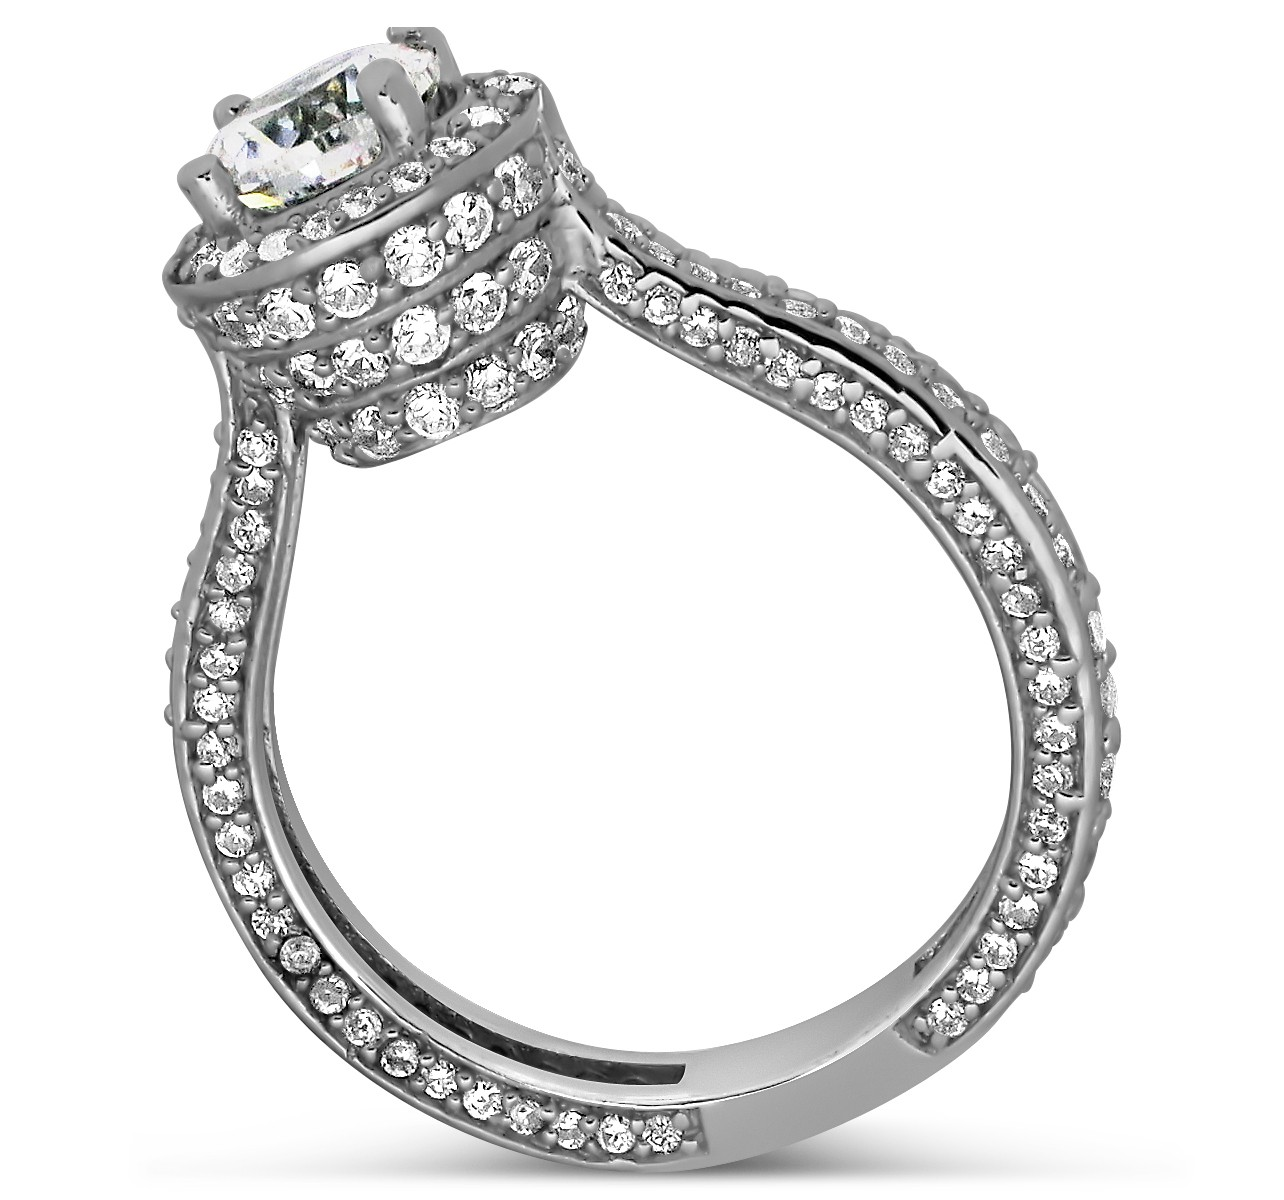 Designer 1 Carat Round Halo Diamond Engagement Ring for Women in